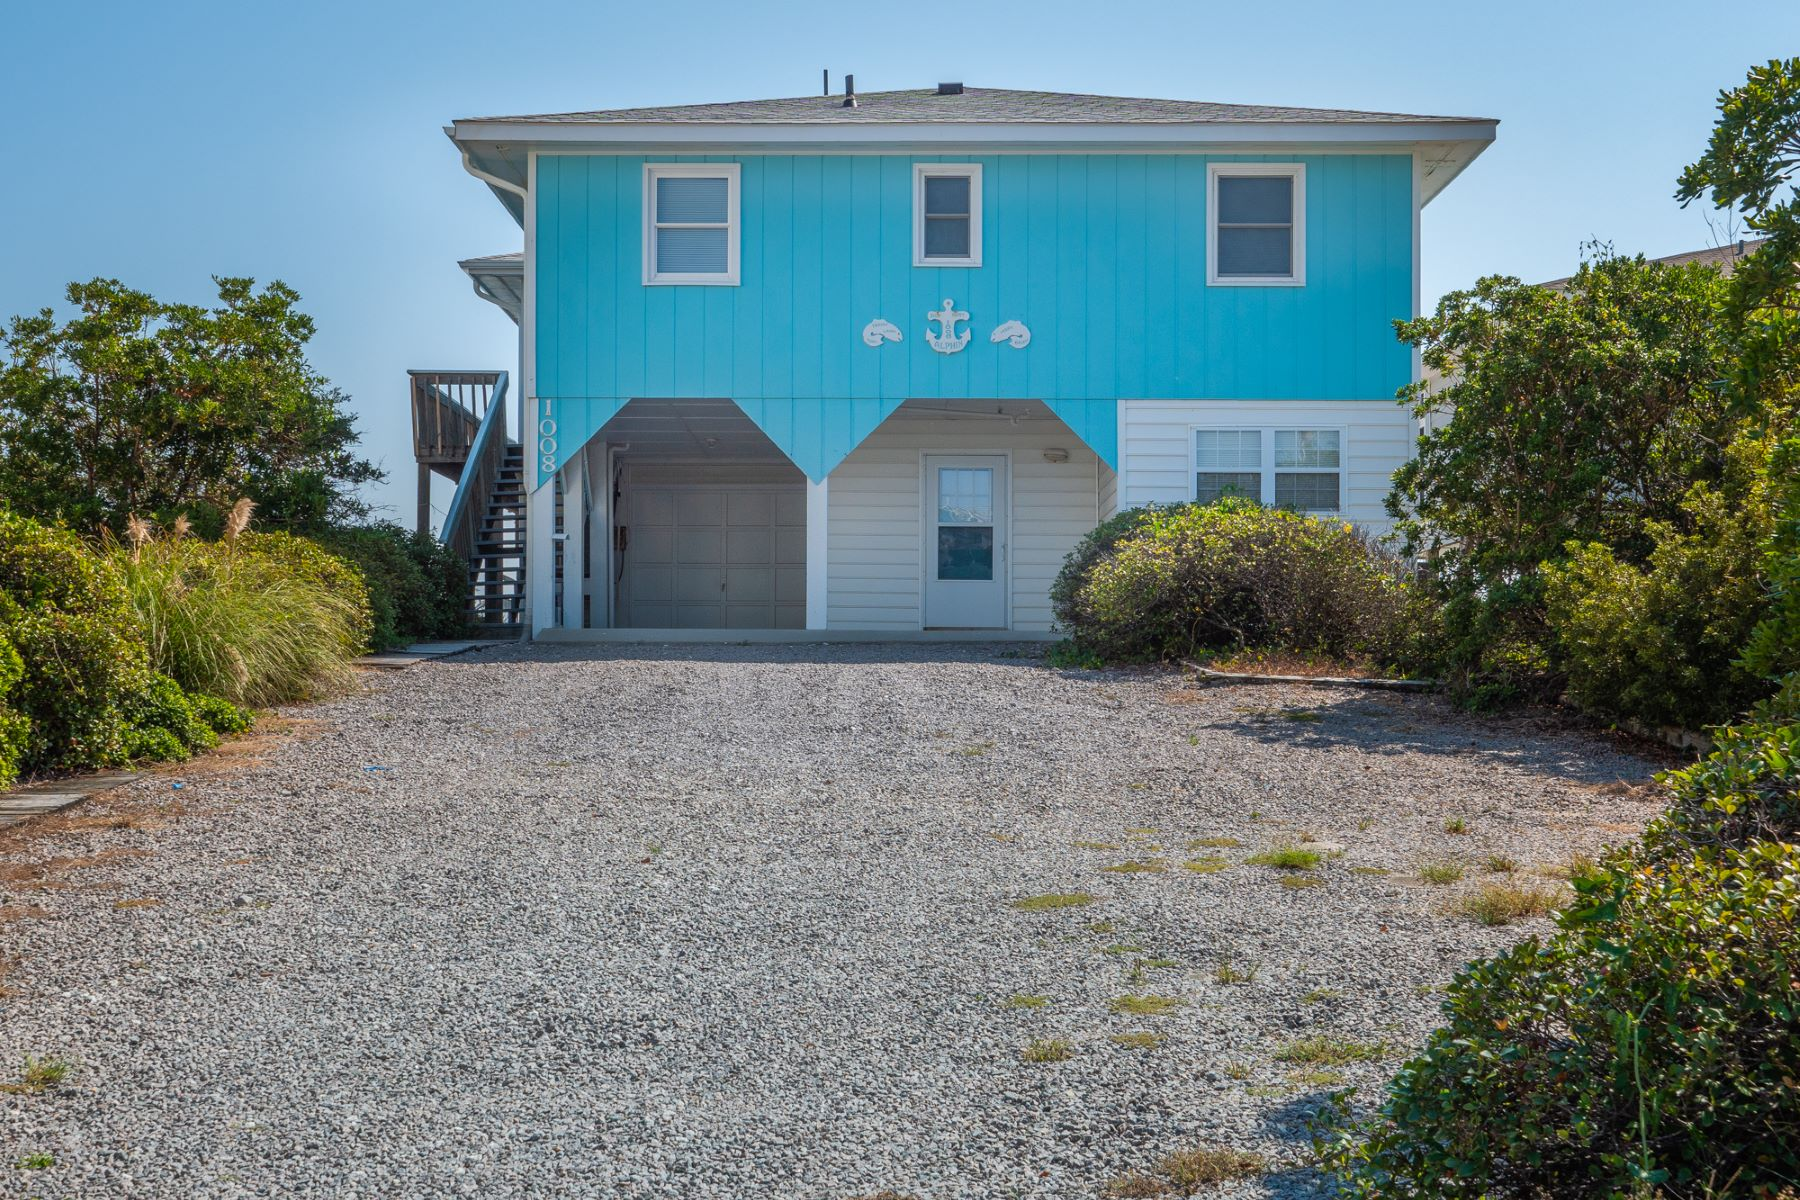 Single Family Homes for Active at Classic Topsail Beach Home 1008 S Shore Dr Surf City, North Carolina 28445 United States